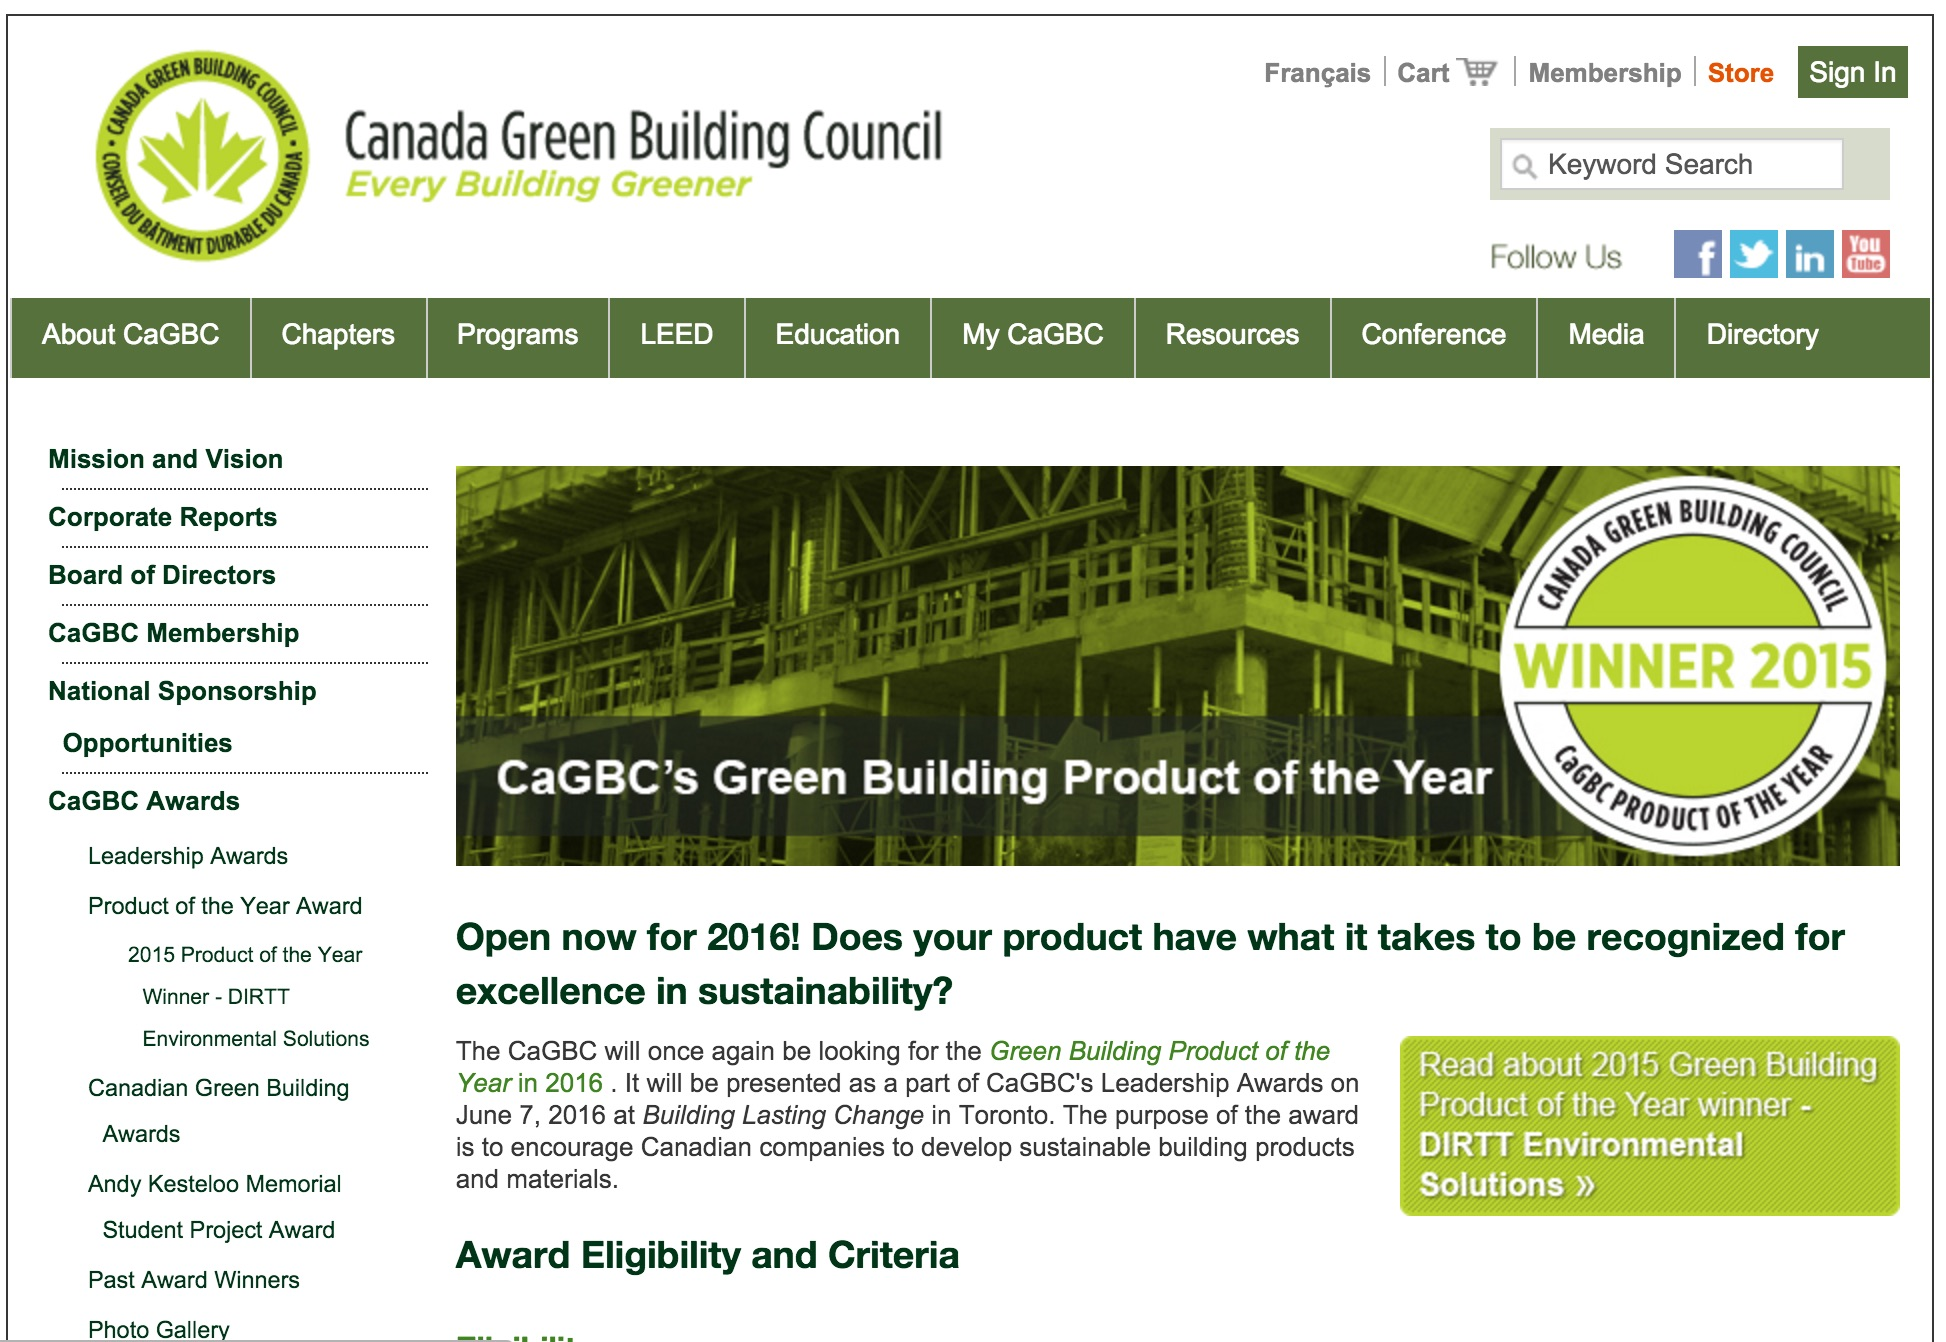 cagbc product of the year